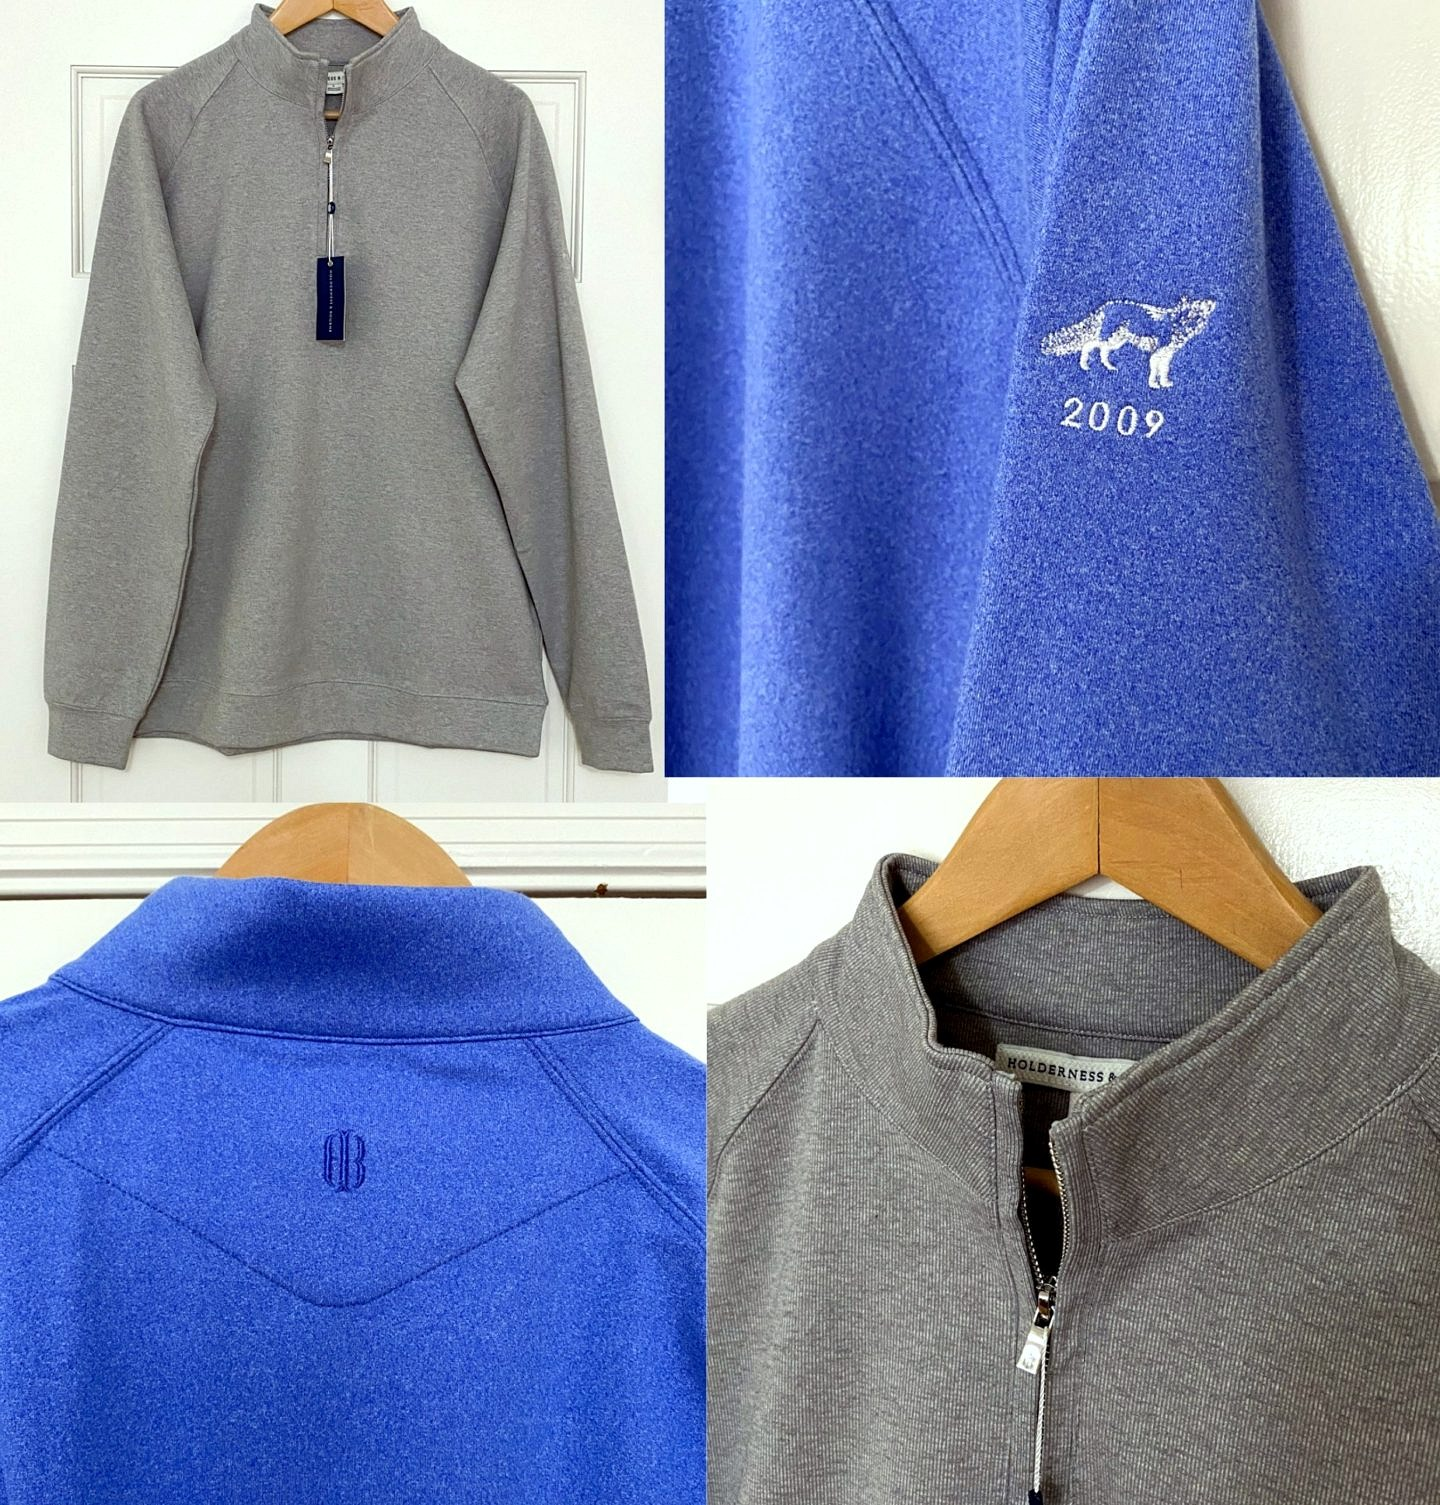 NOW AVAILABLE: The Holderness & Bourne X RCS Member Logo Quarter Zips